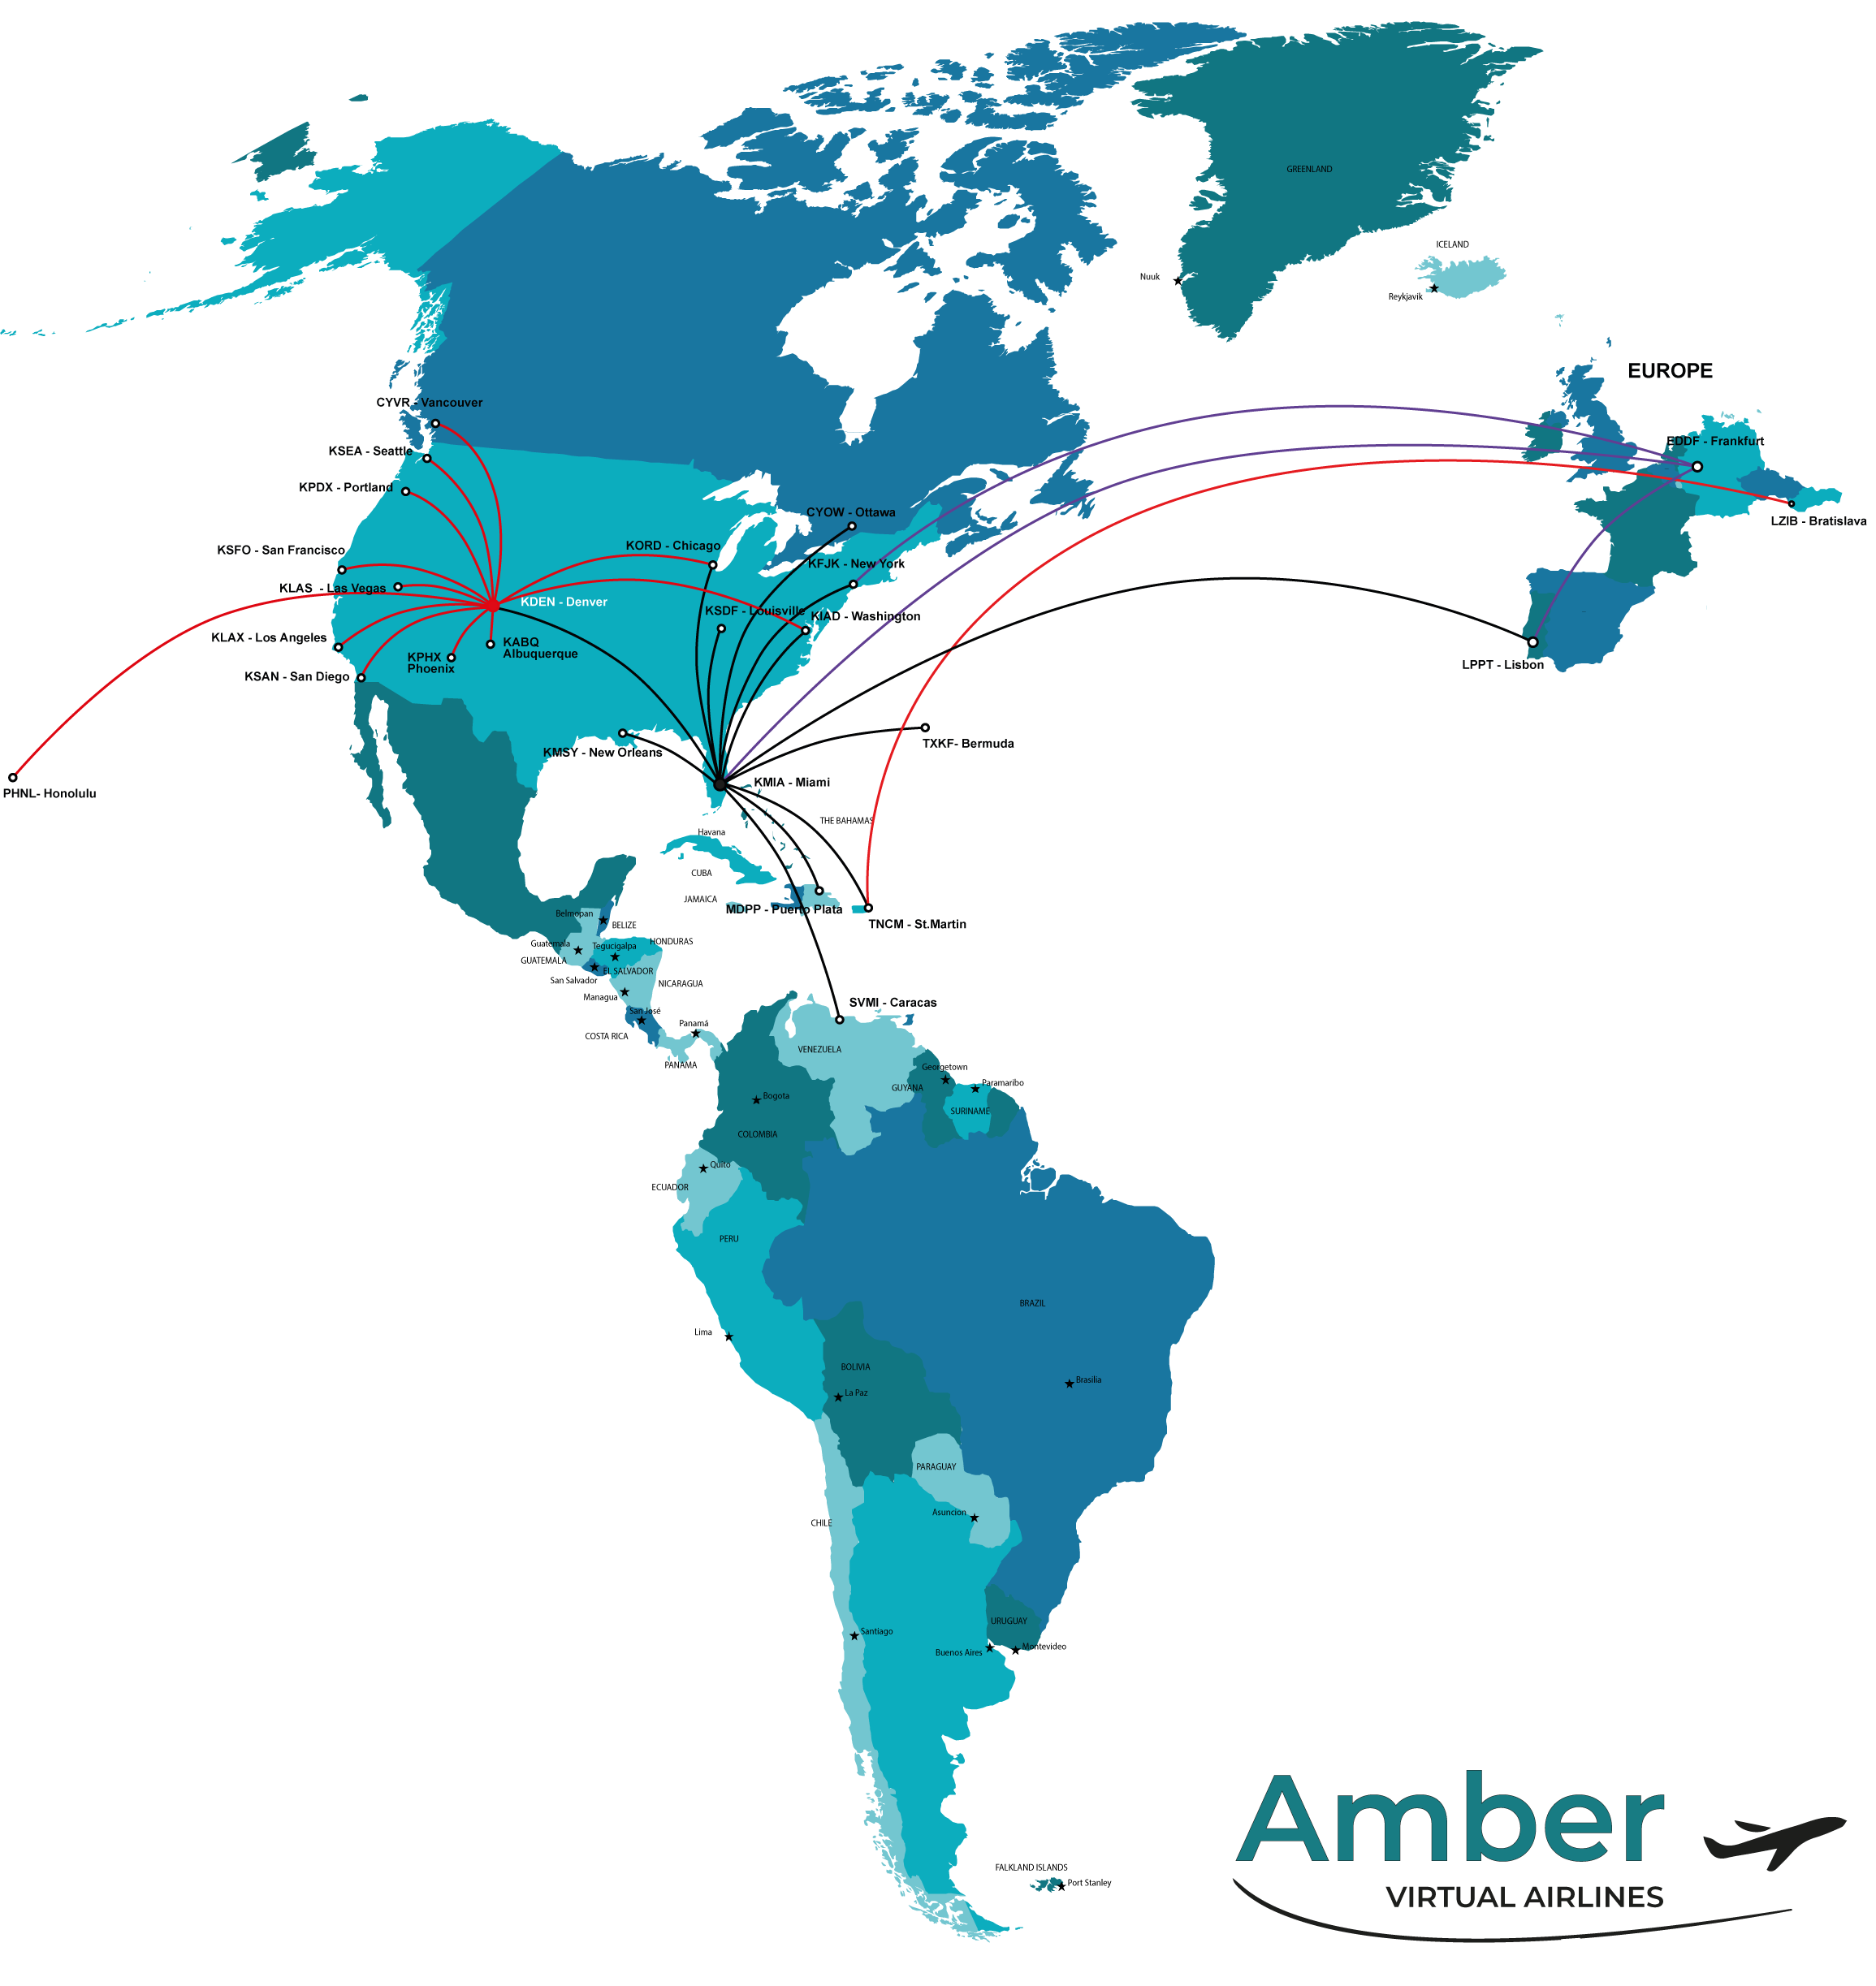 Amber Airline map